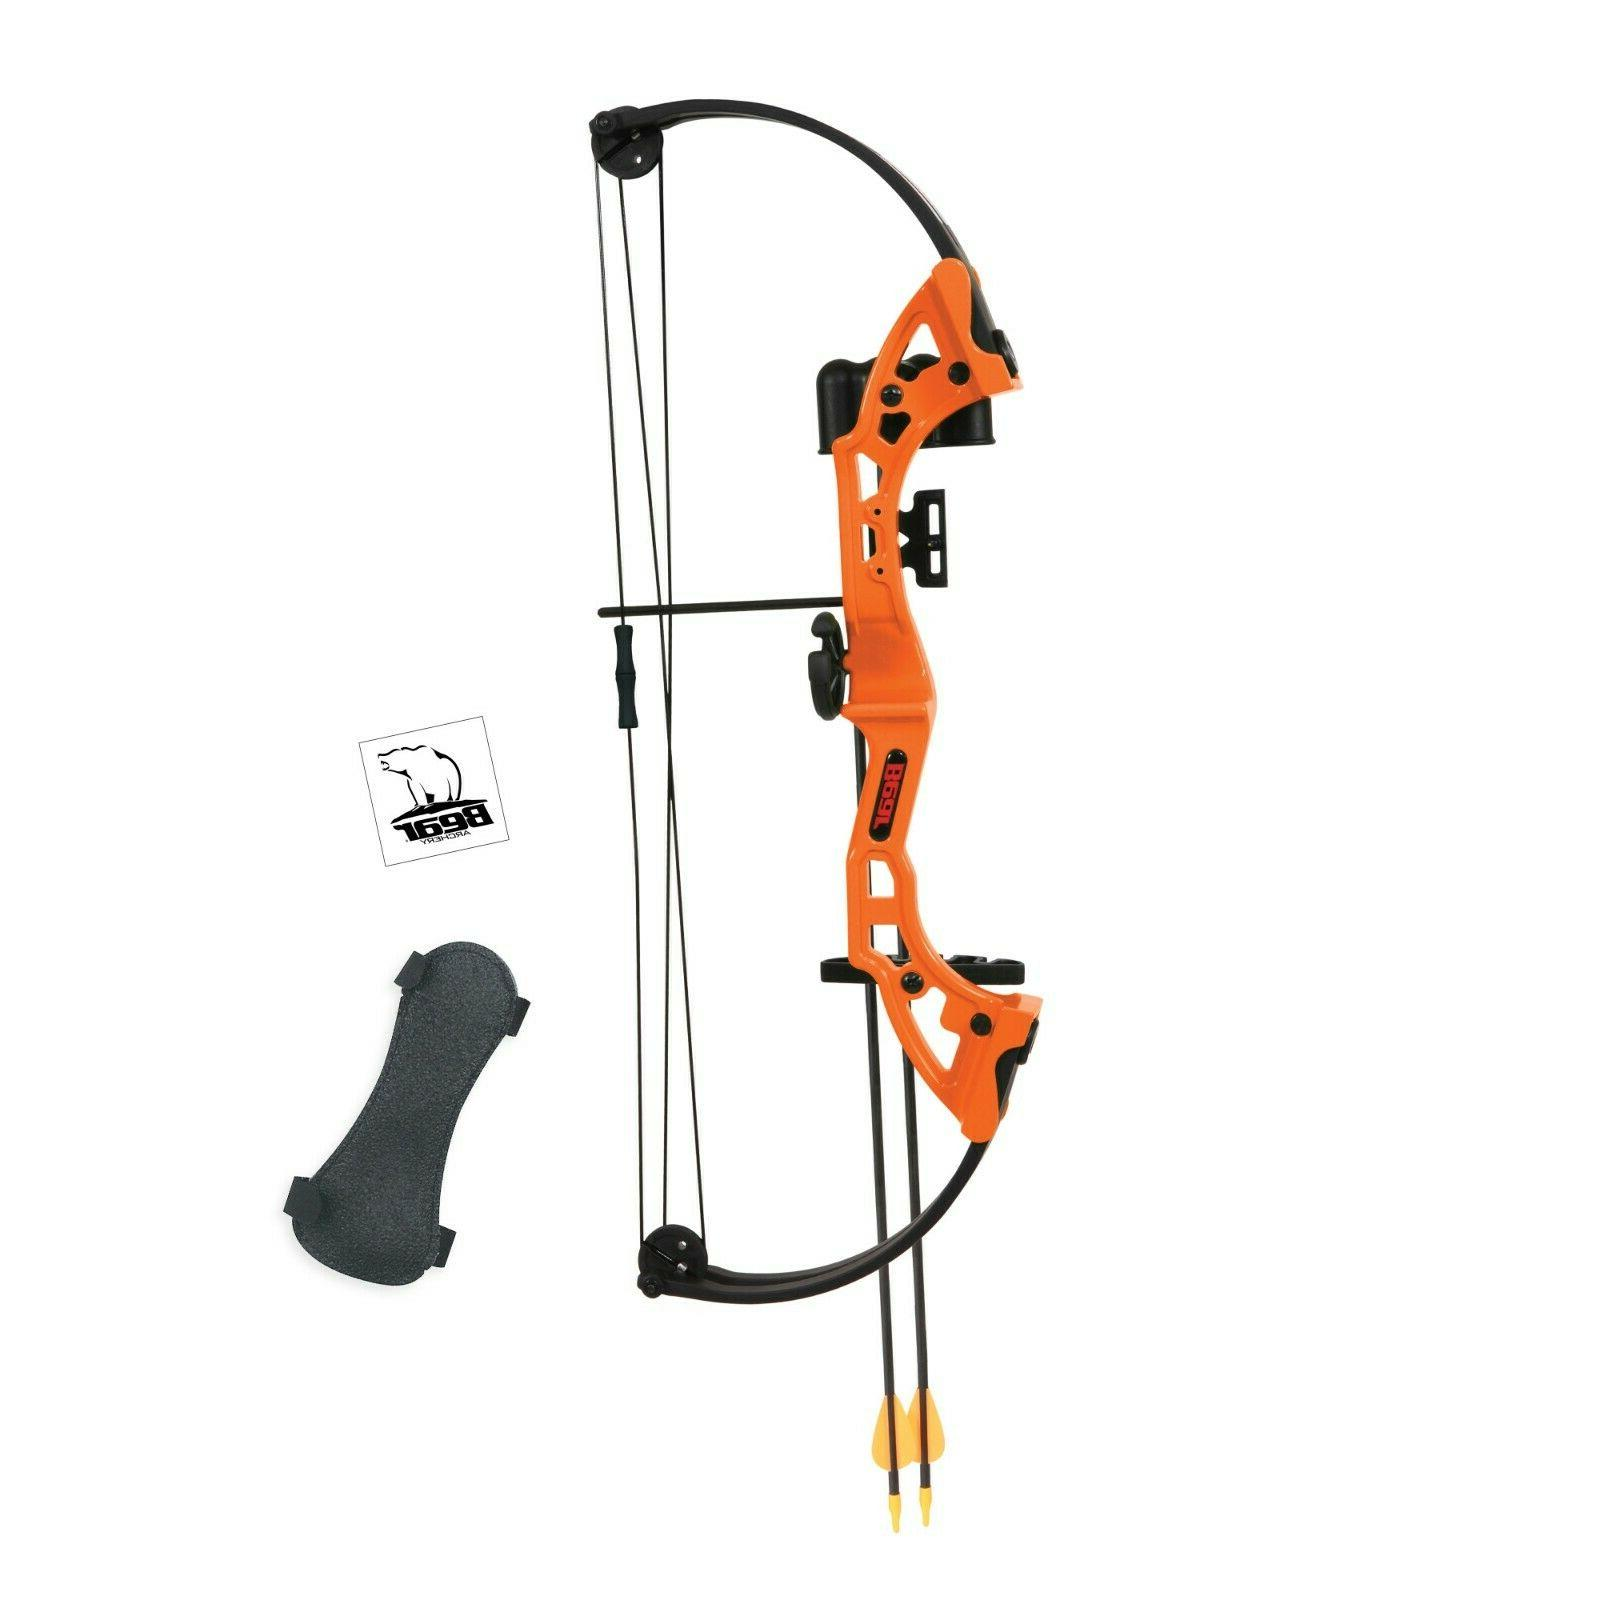 Kids Starter First Compound Bow Arrows Practice